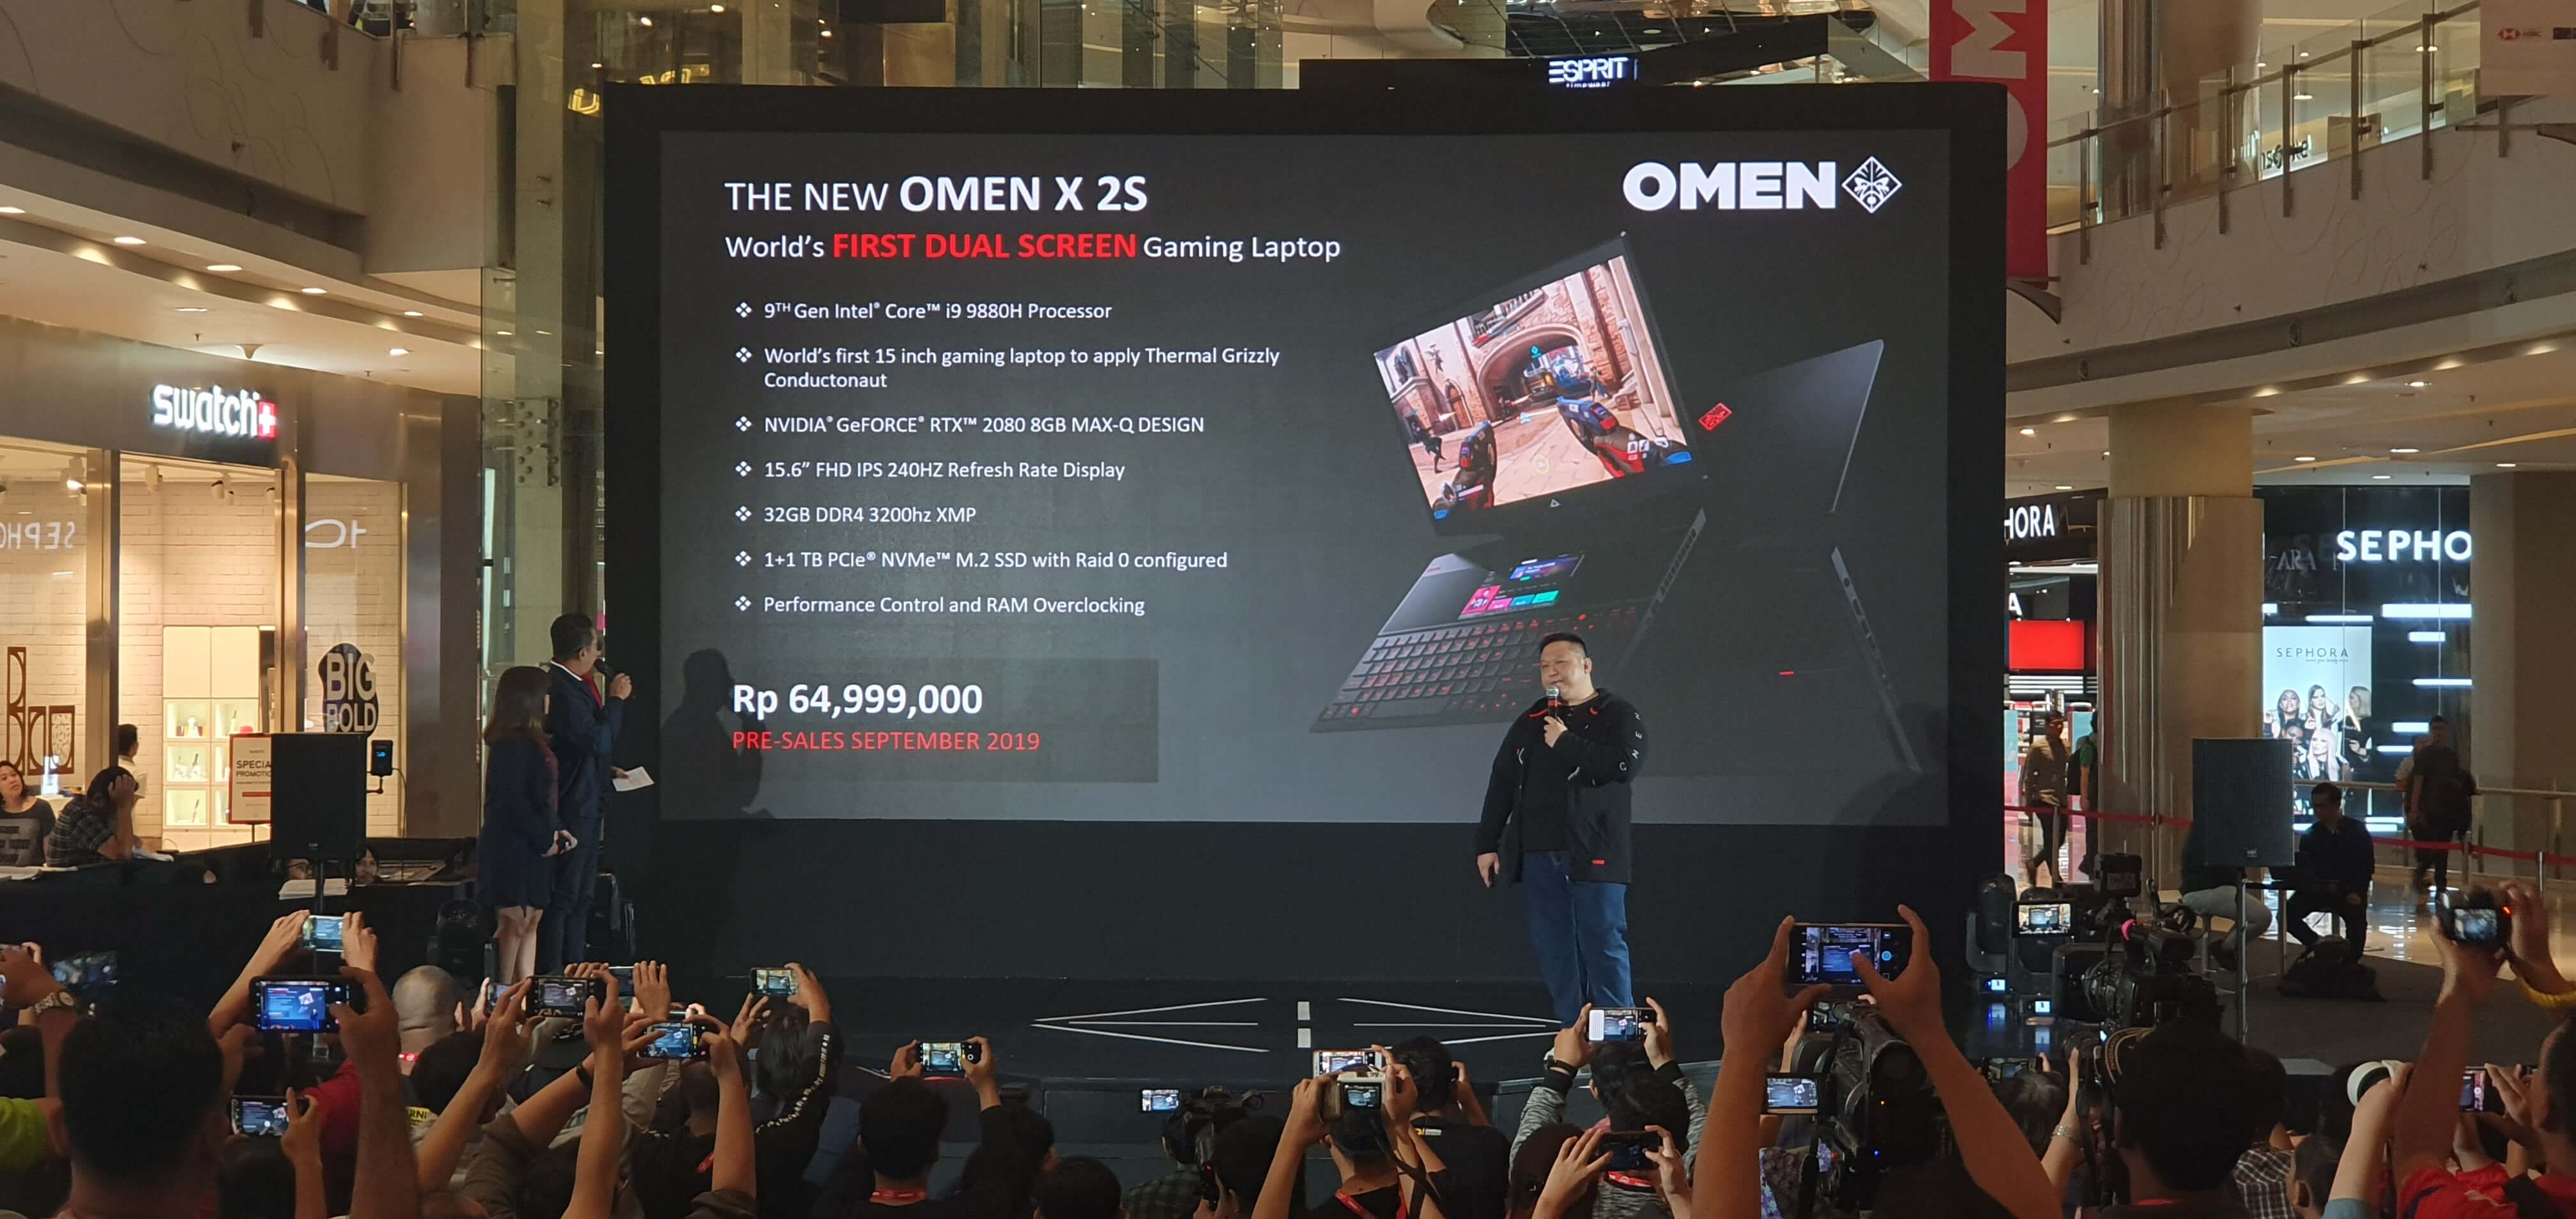 OMEN, HP Indonesia, HP Omen, laptop gaming, PC, personal computer, OMEN X 25, OMEN 15, Pavilion Gaming 15, gamers, gaming, e-sports, esports, Asian Games 2018, Campus Legends, DOTA 2, Conter-Strike